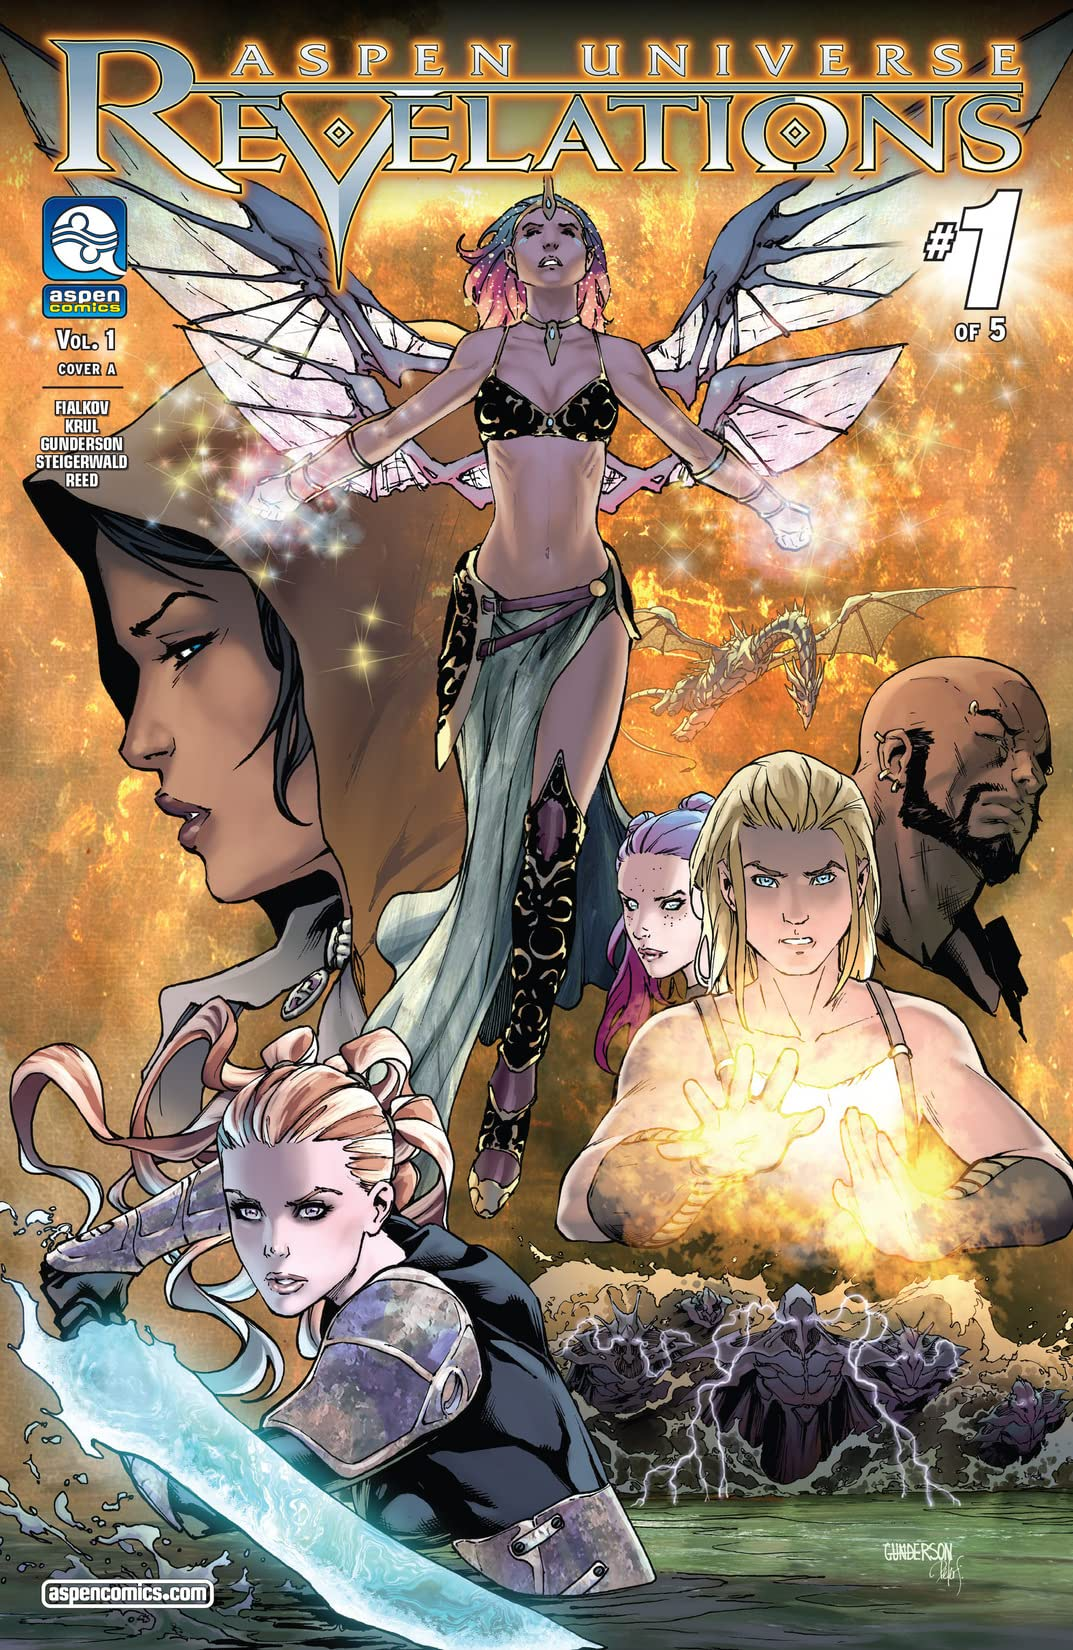 Aspen Universe: Revelations Vol. 1 #1 (of 5)